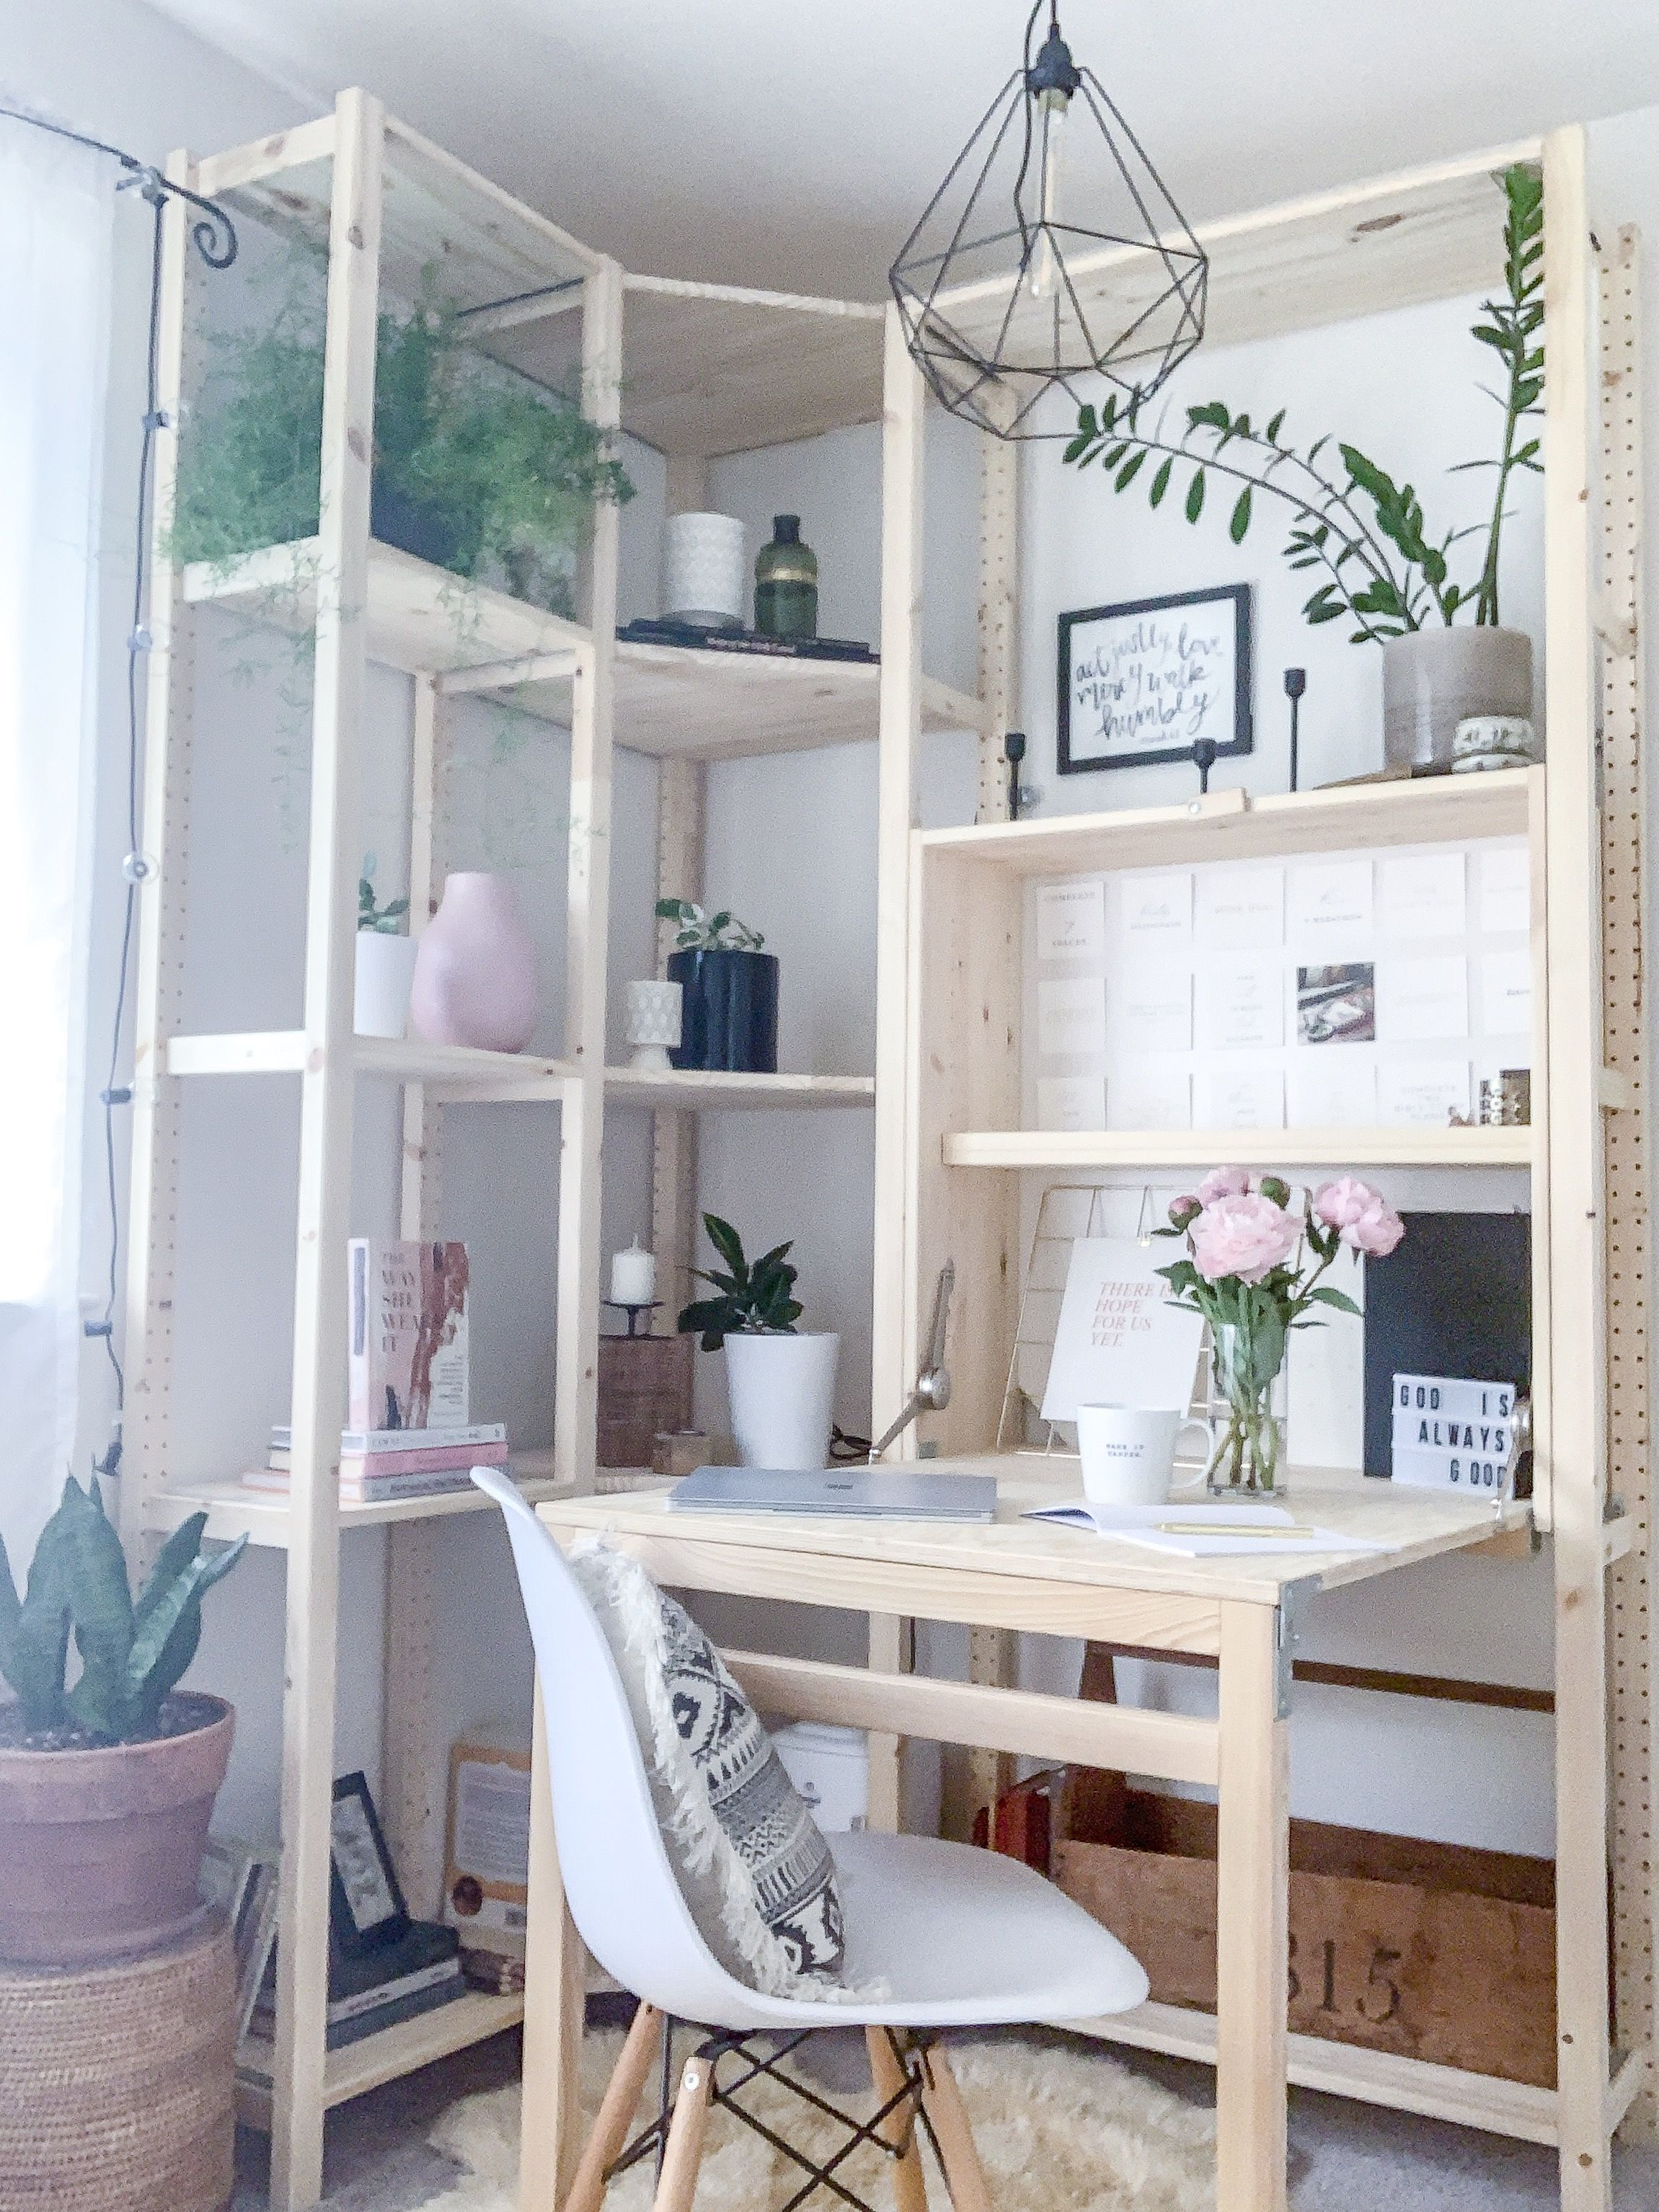 Ikea Deko Schlafzimmer Bedroom Makeover Featuring The Ikea Ivar Shelves - # ...